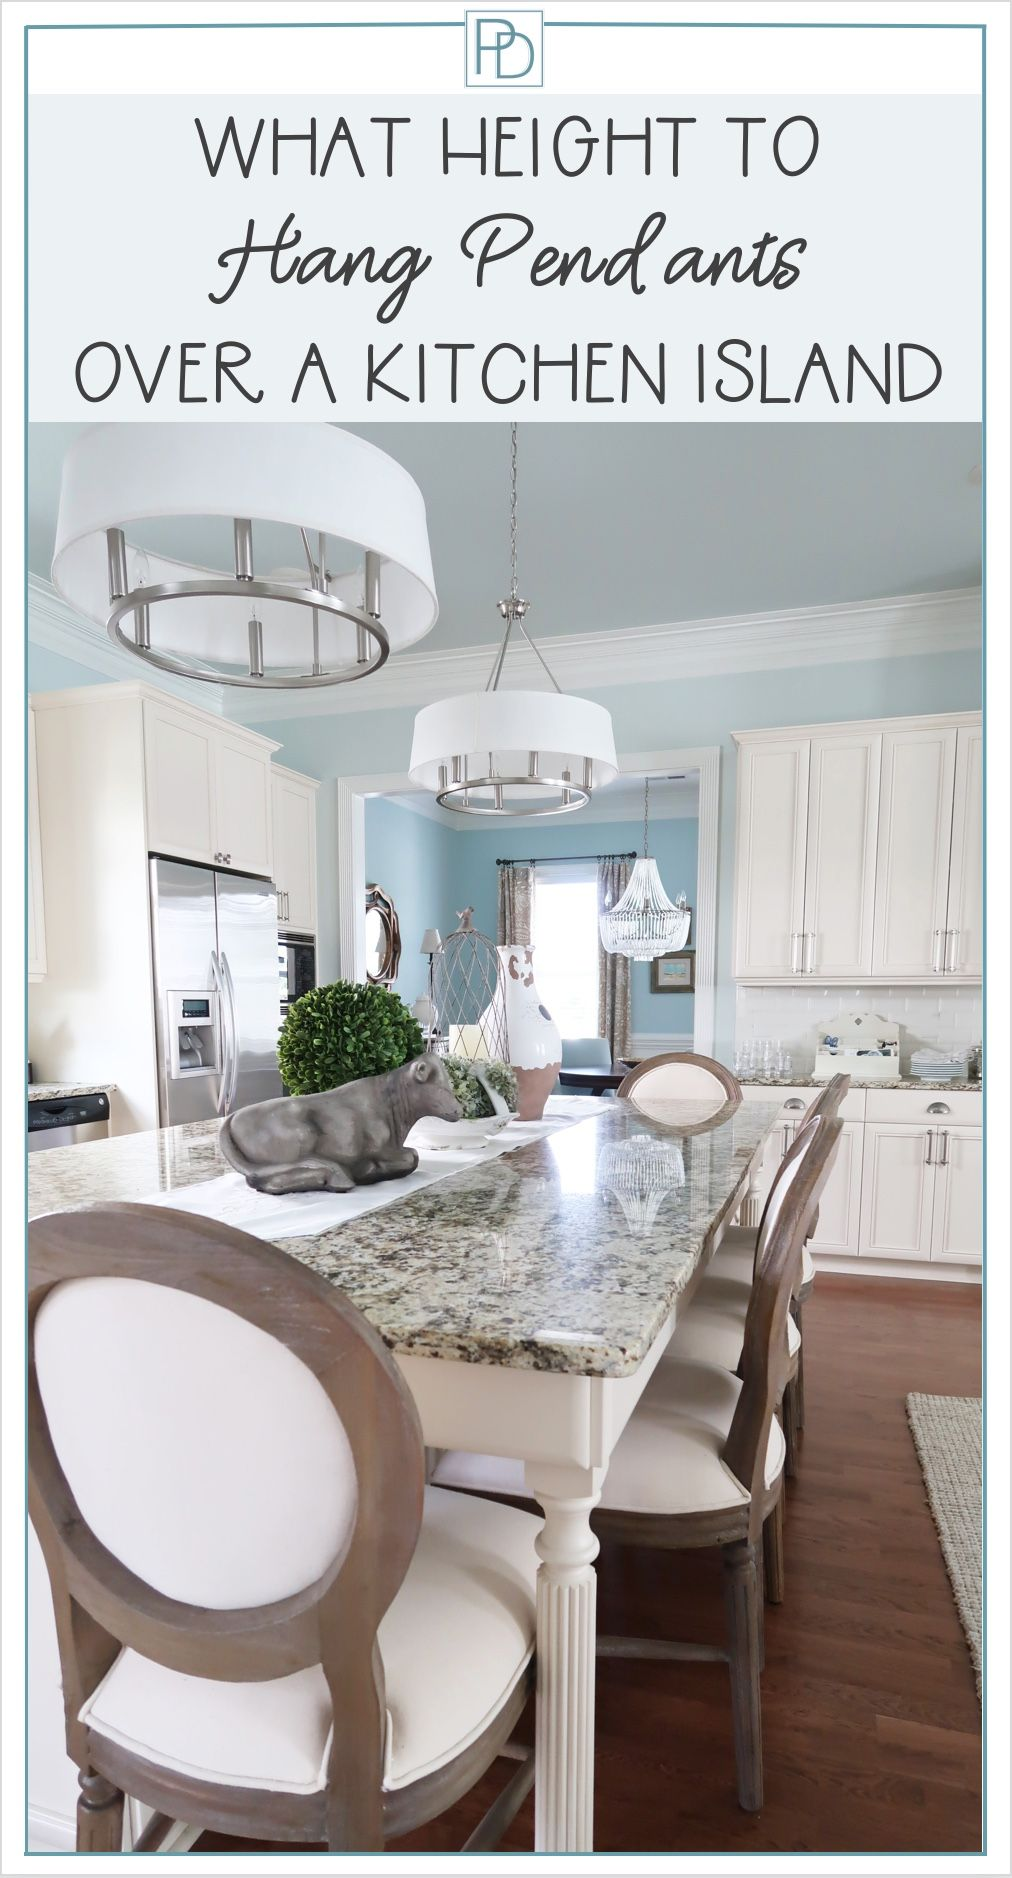 a quick and inexpensive update over your kitchen island is new light